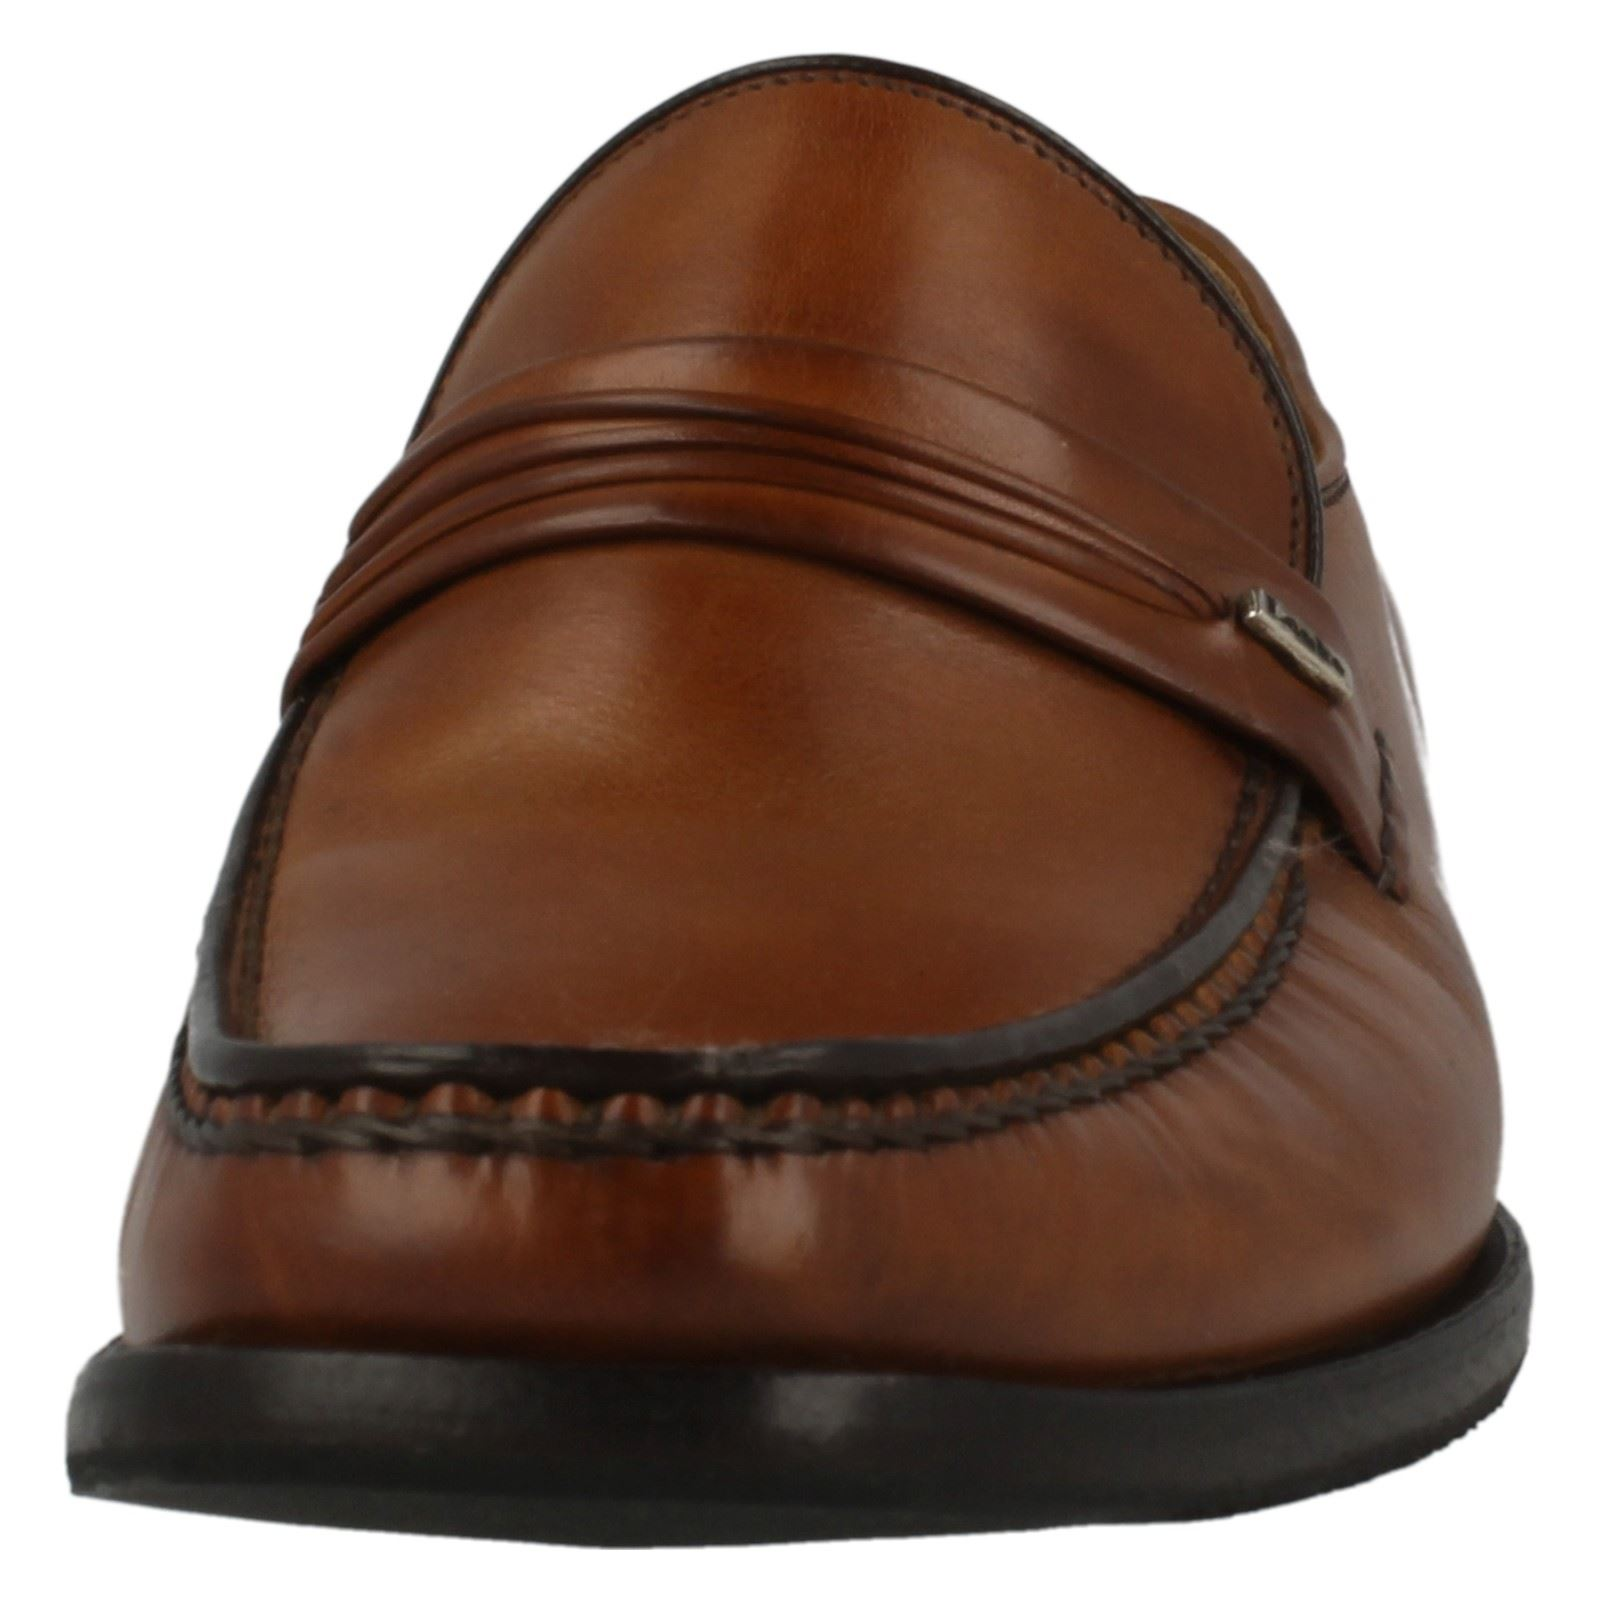 Mens Loake Leather Moccasin Slip On Shoes Palermo 2